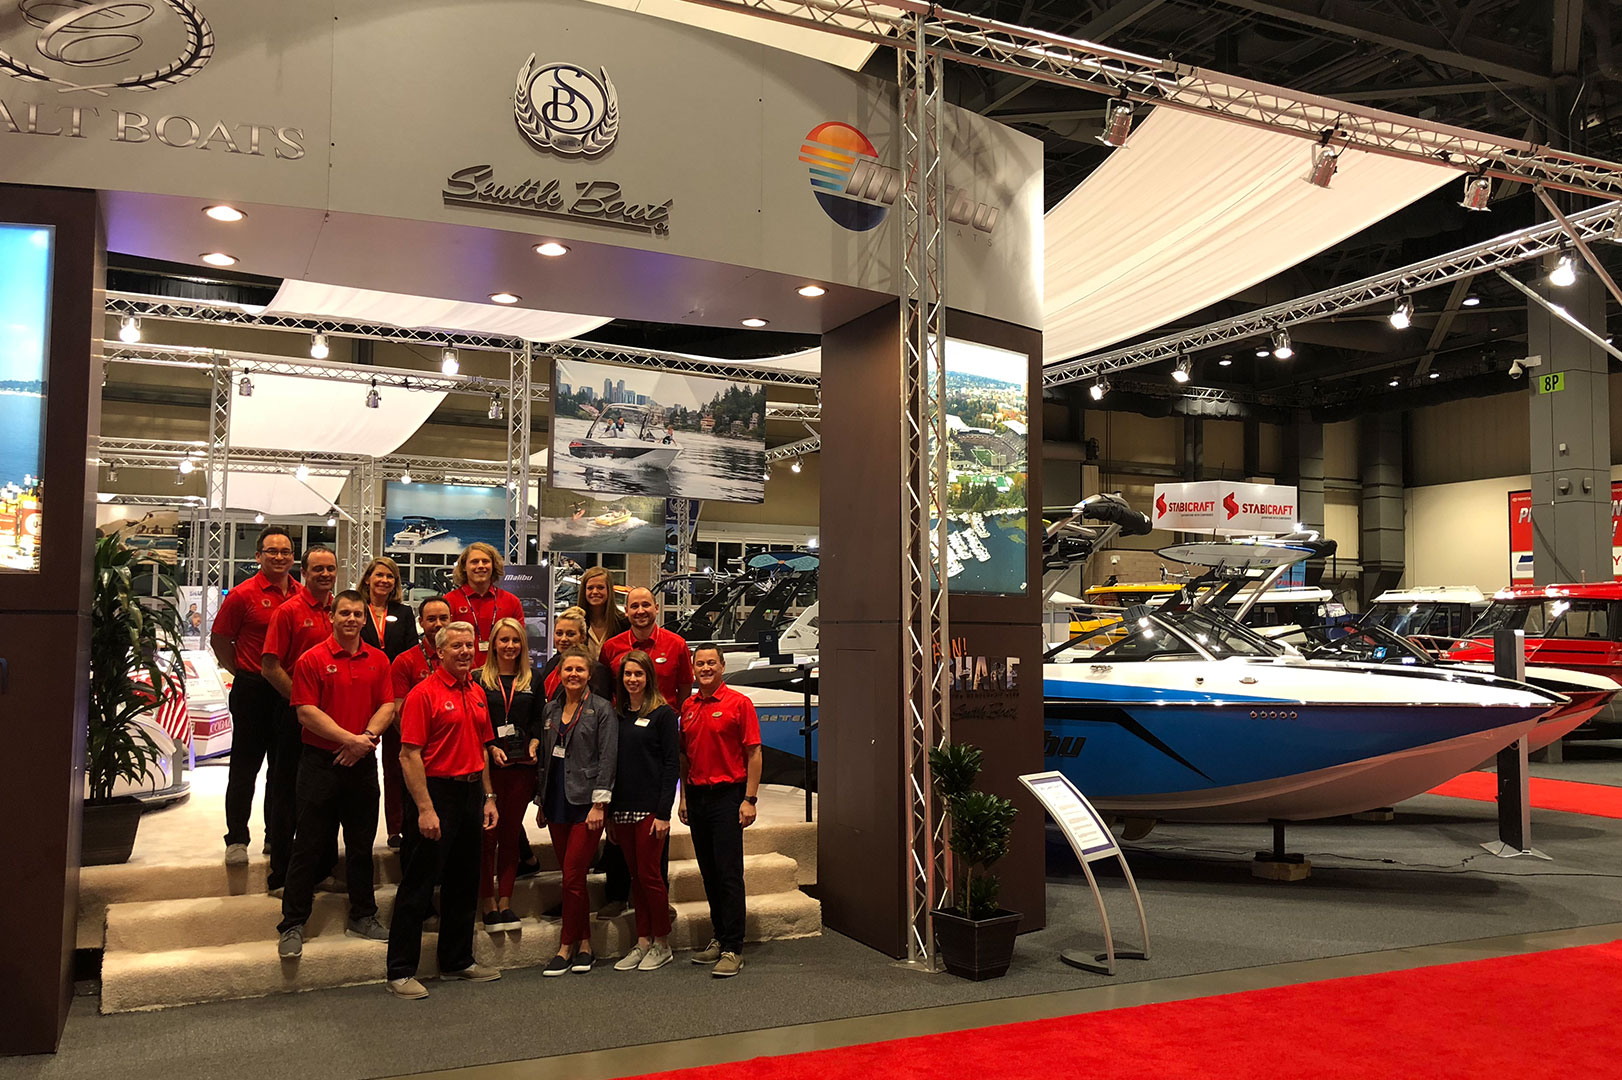 Seattle Boat Company Wins Best Boat Display at Seattle Boat Show